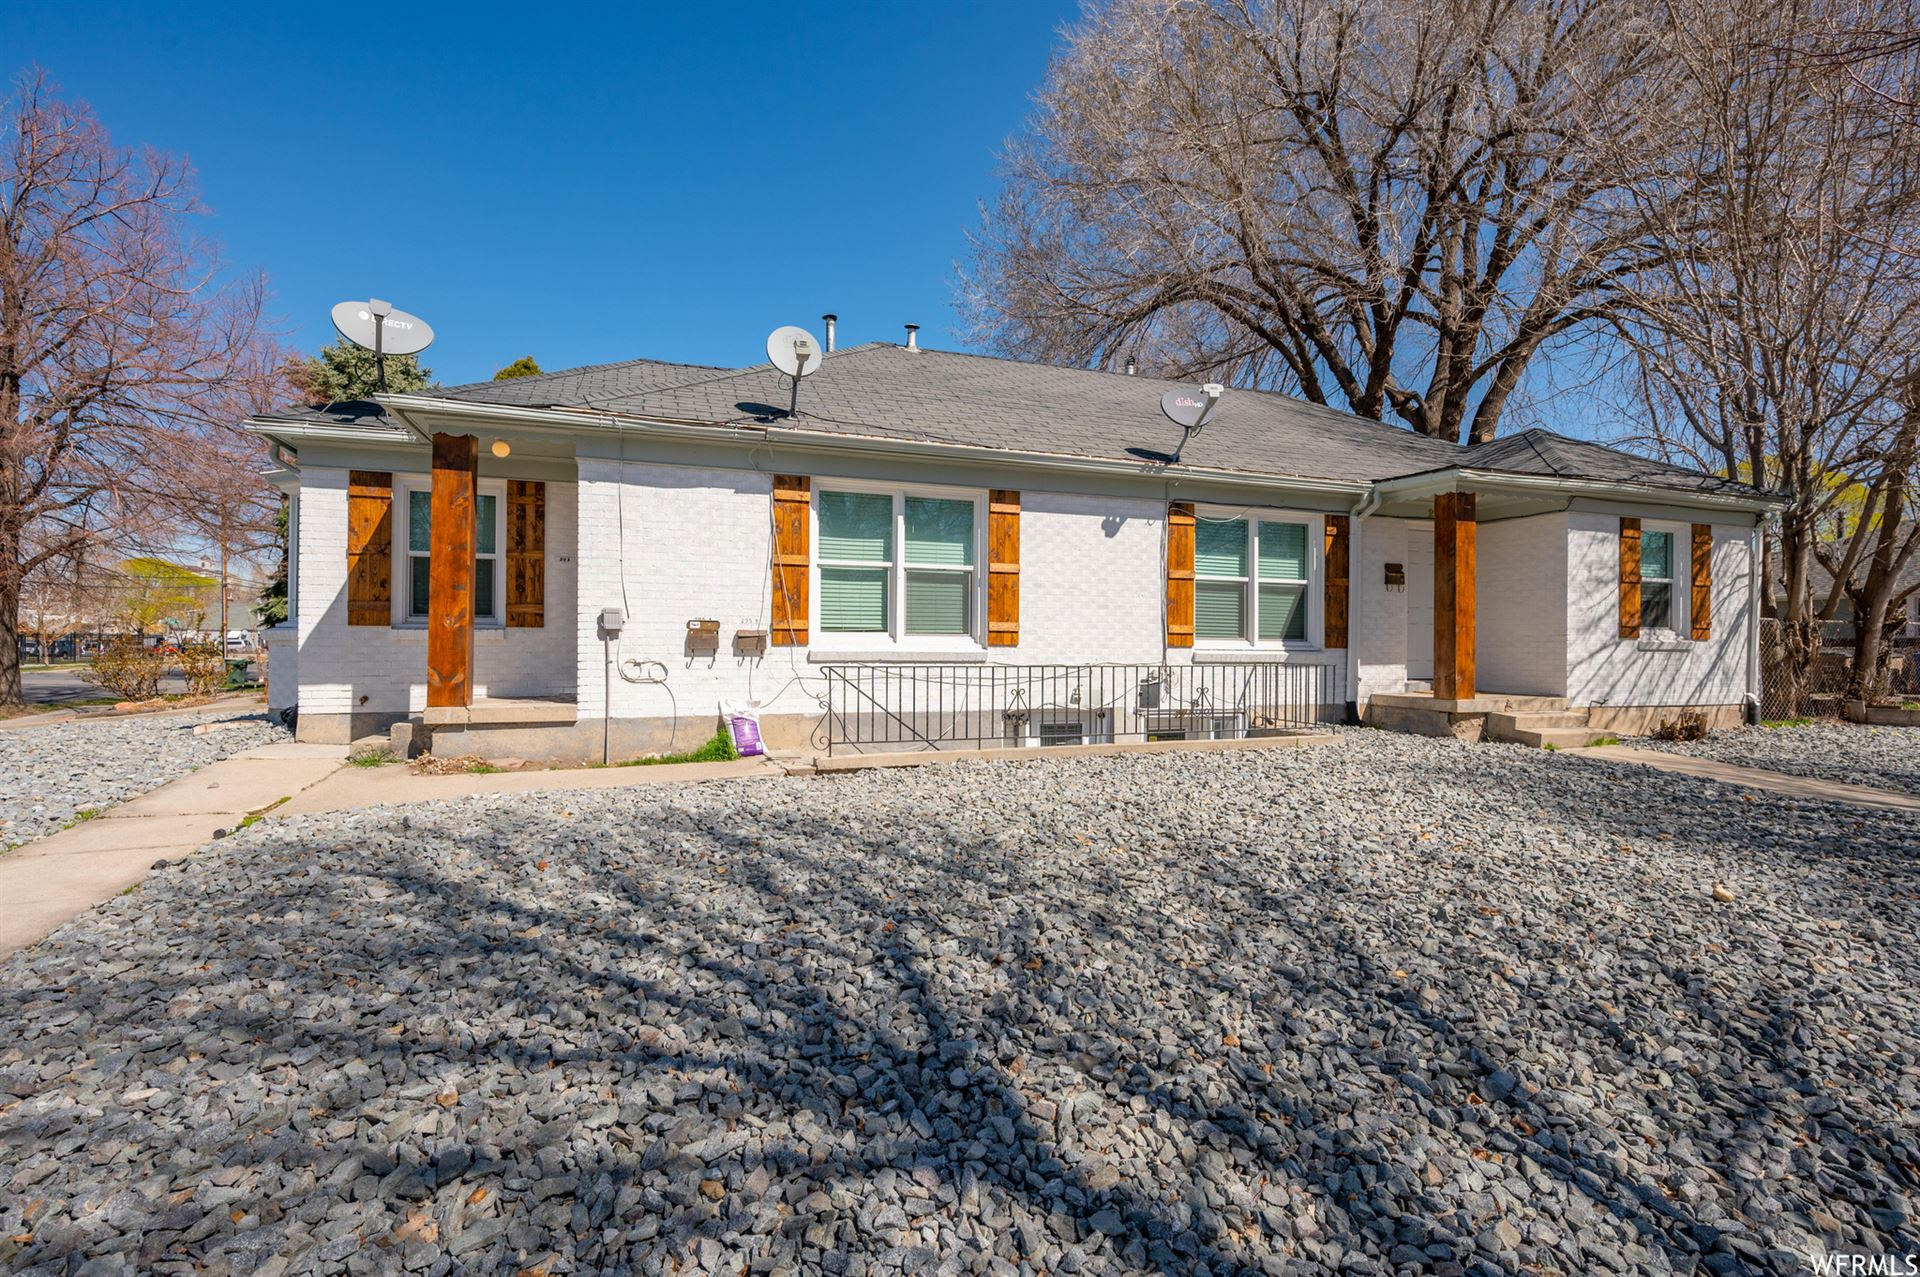 Photo of 203 E WILLIAMS S, Salt Lake City, UT 84111 (MLS # 1733563)